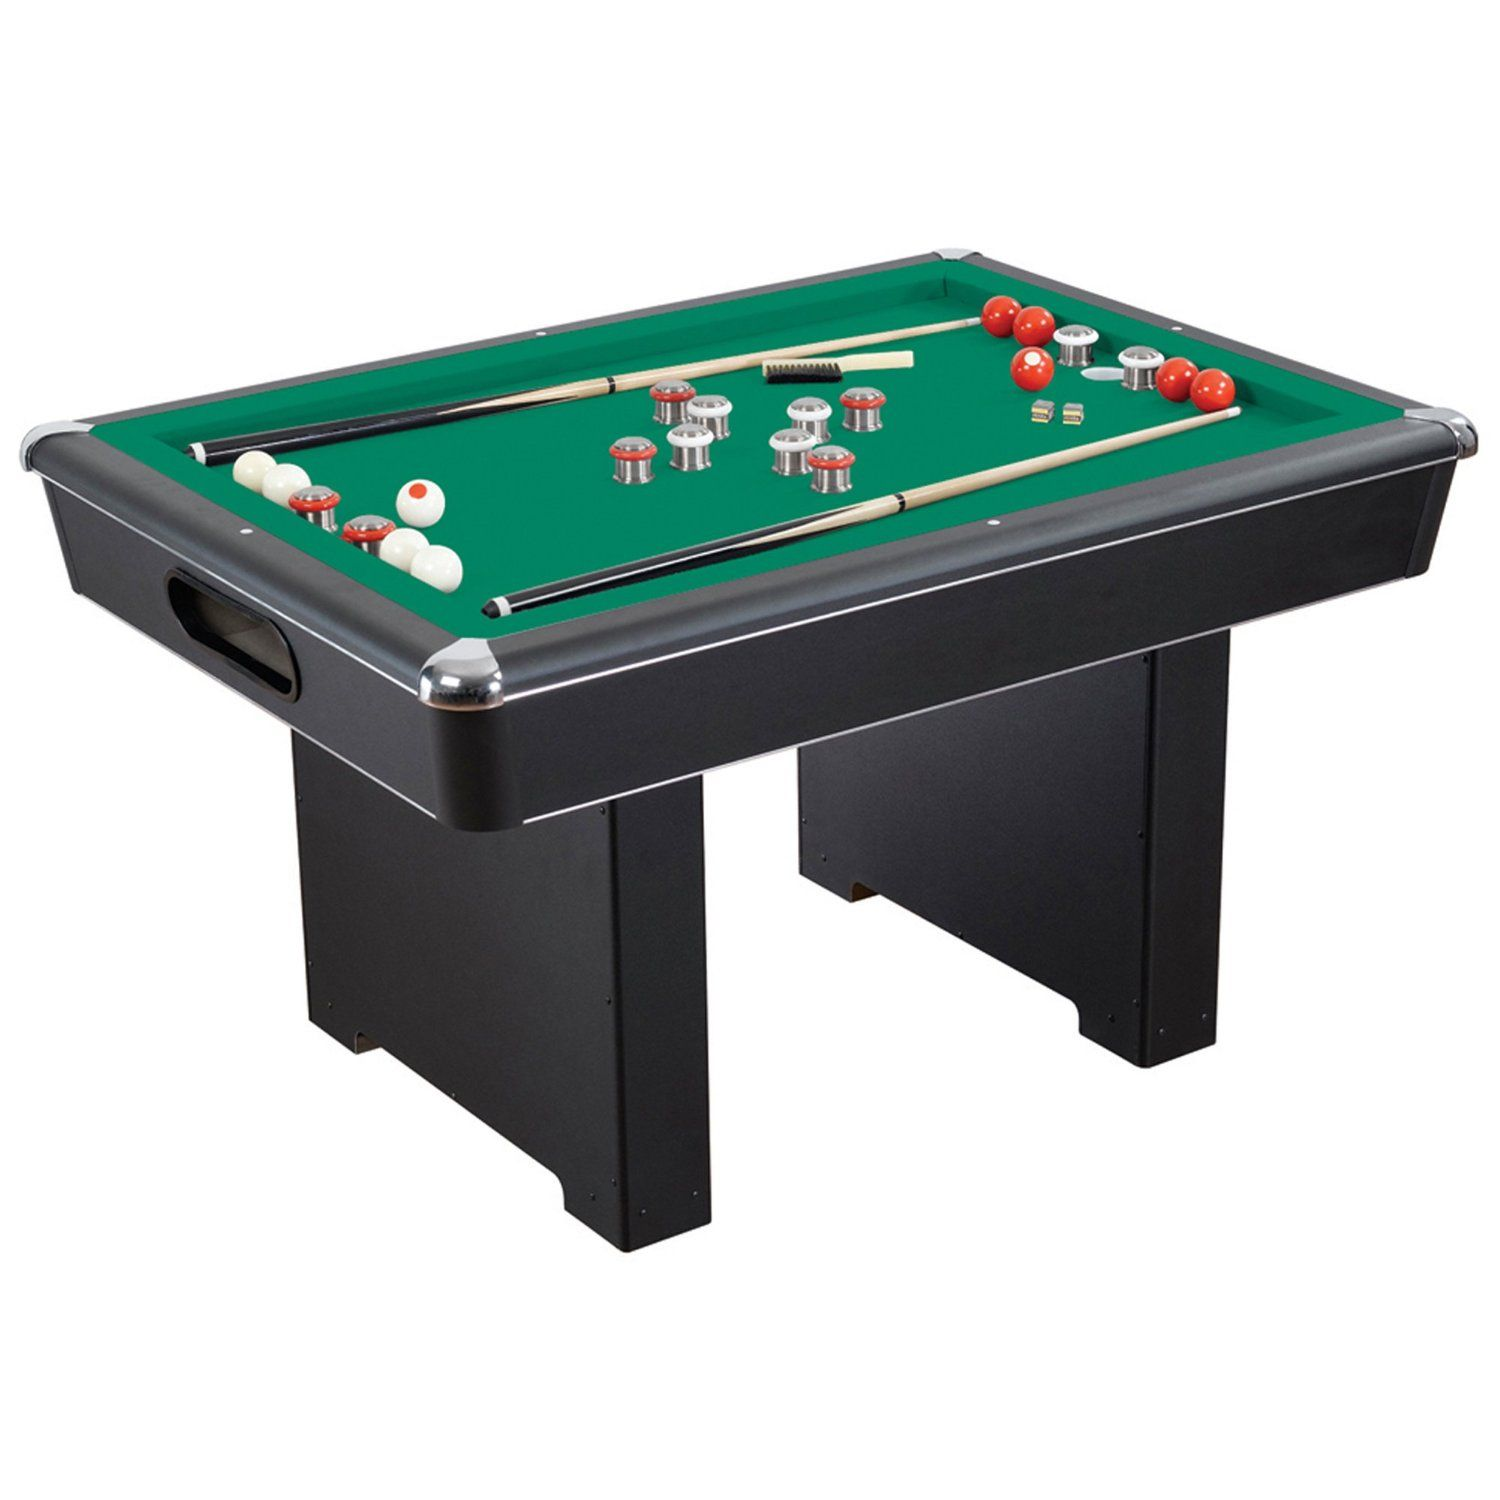 Here Is A Bumper Pool Table By Hathway I Call This Version Of - Sportcraft 7ft pool table review